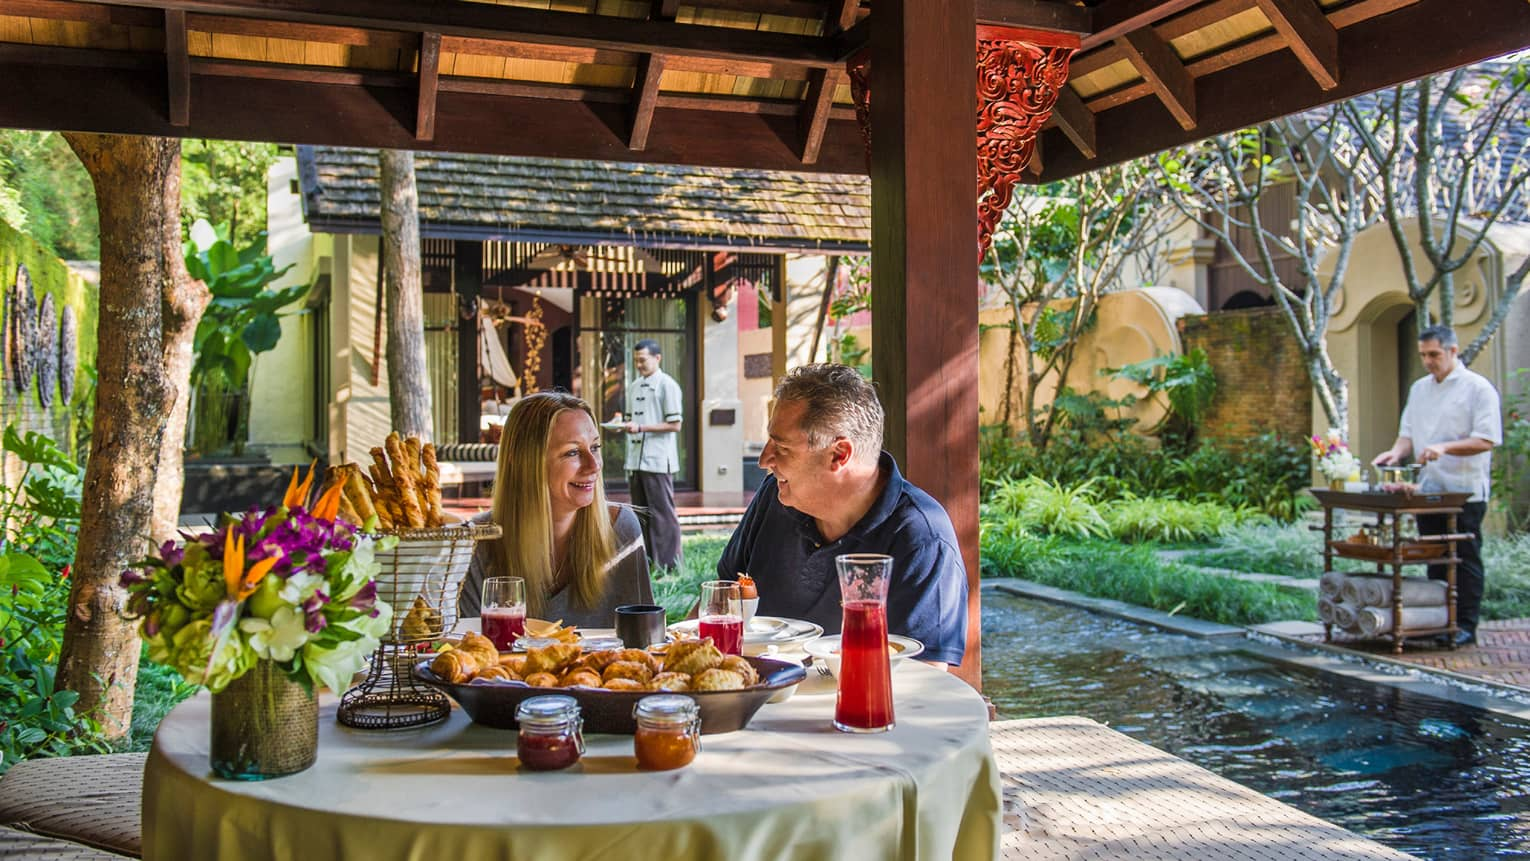 Smiling man and woman dine at table with baskets of pastries, breadsticks under wood gazebo